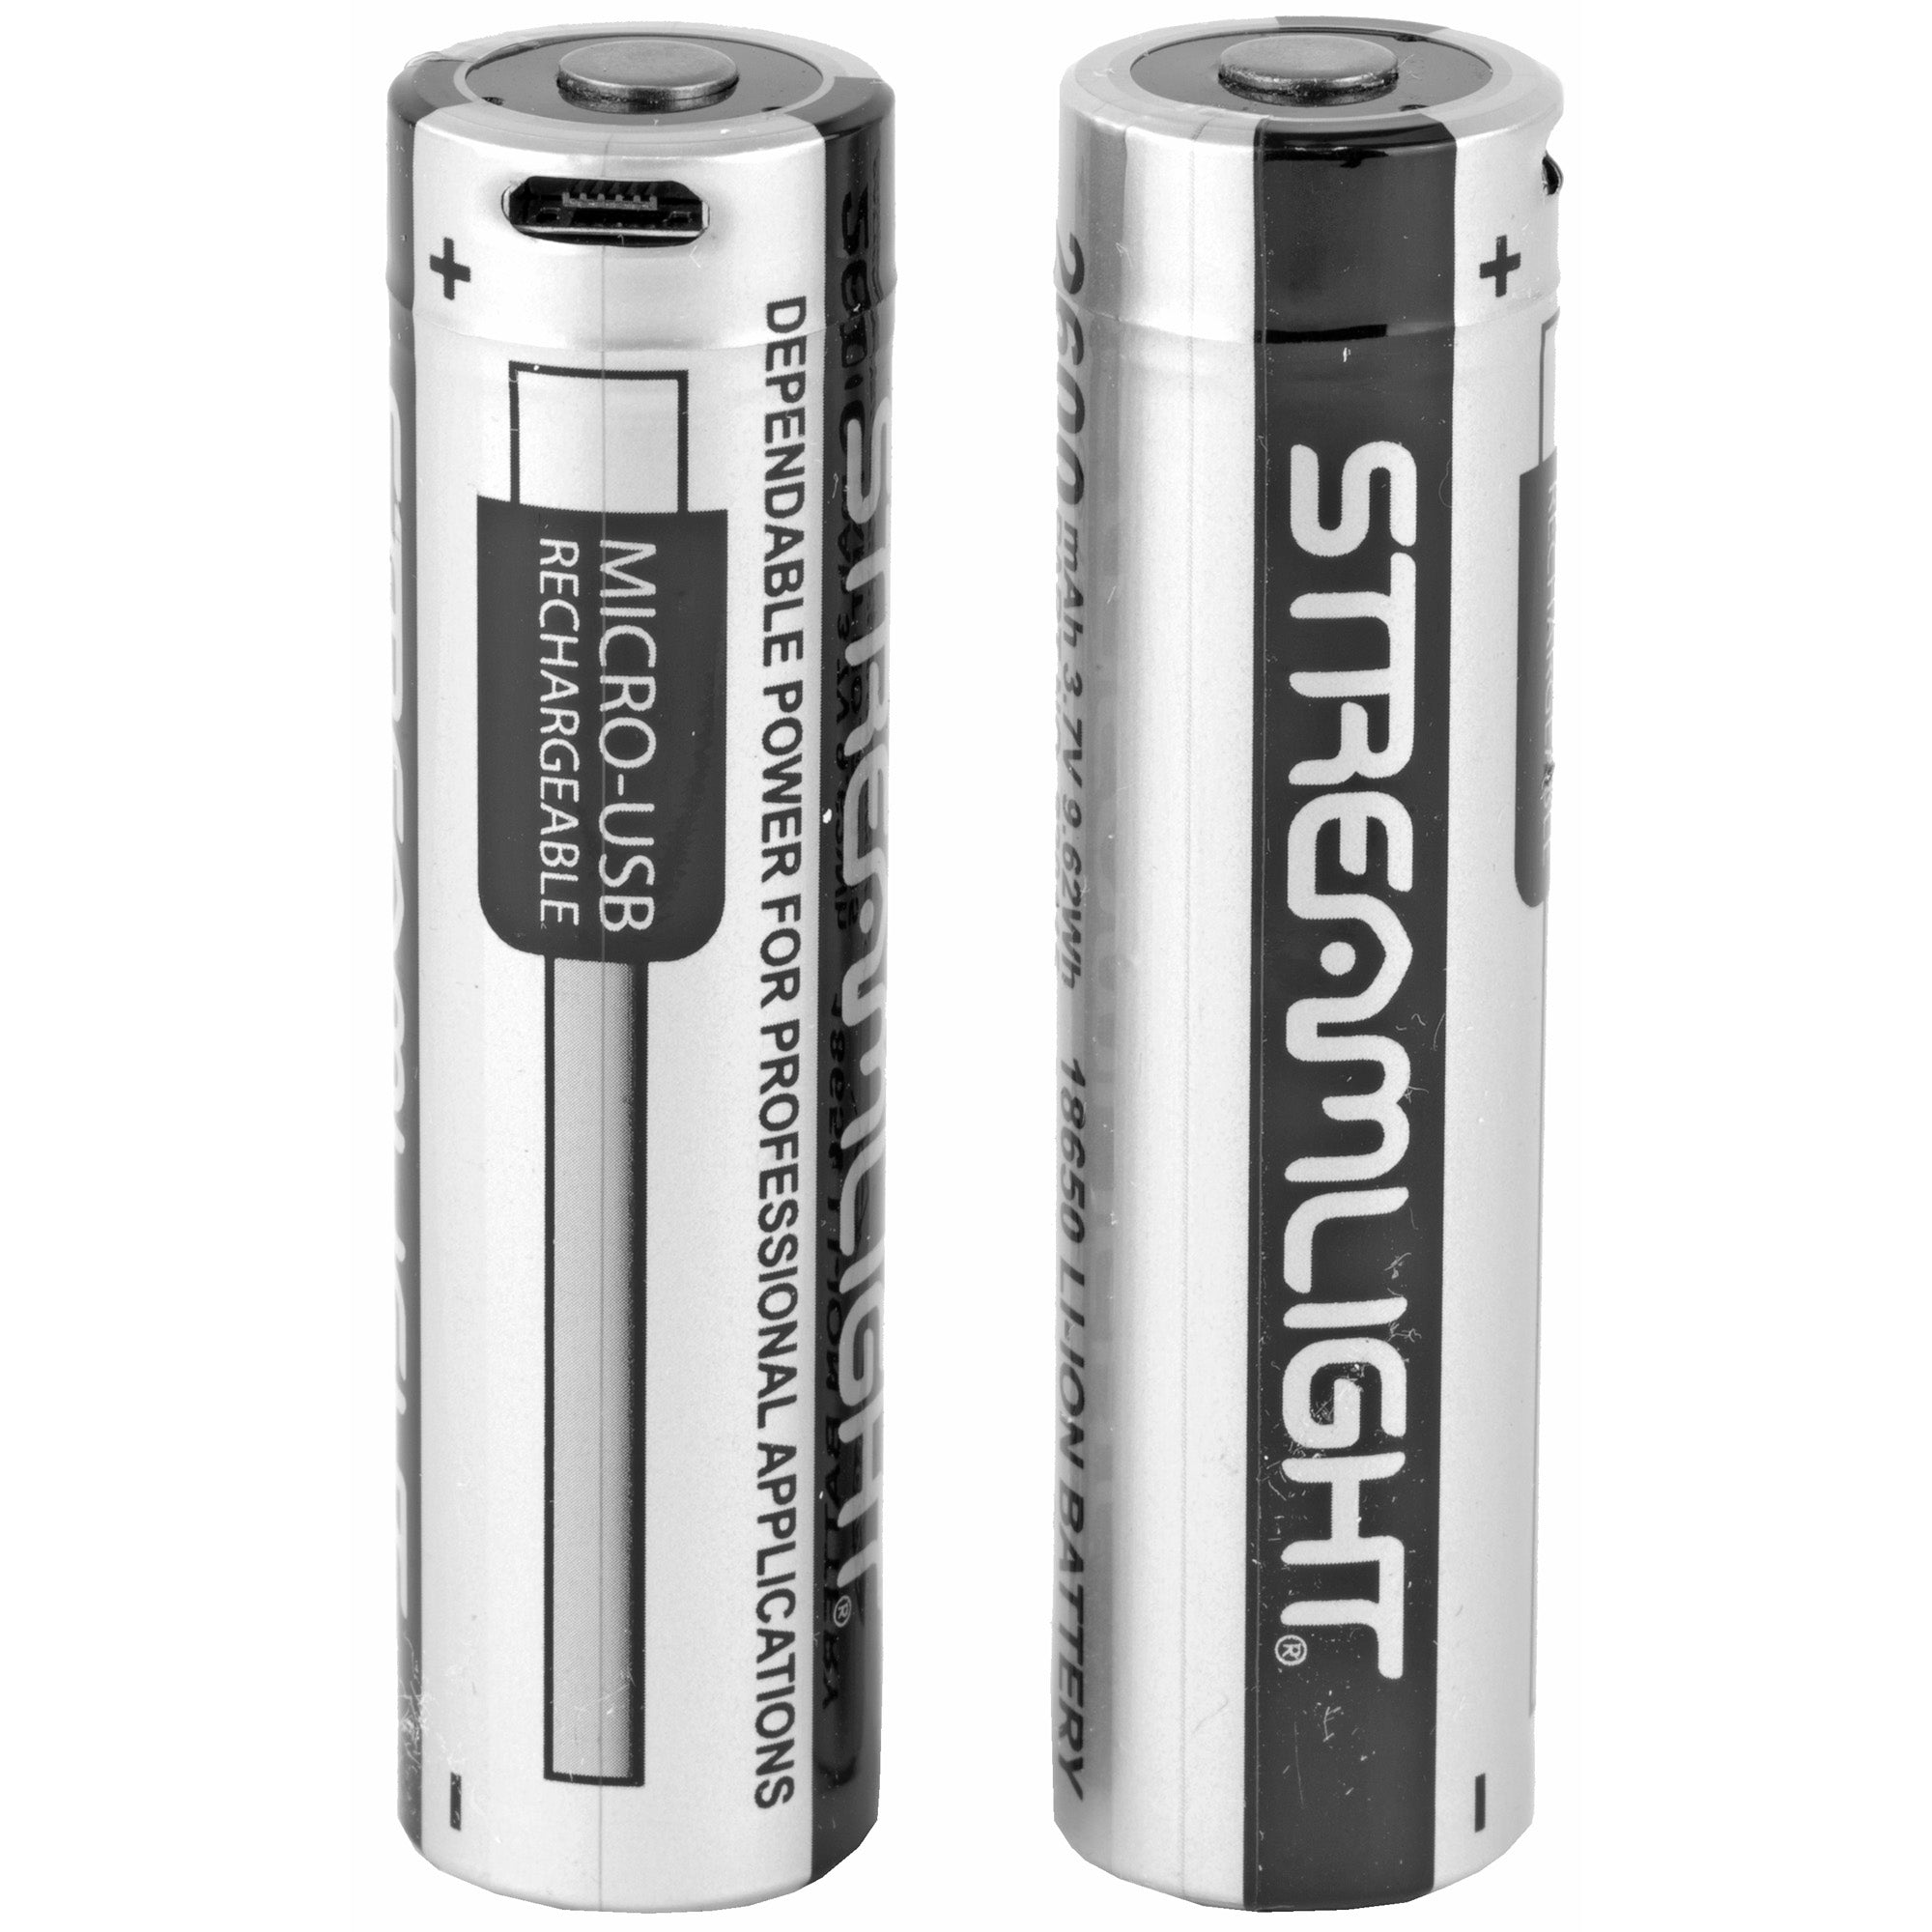 Streamlight, 18650, USB Rechargable Battery, 2/Pack, Clam Pack